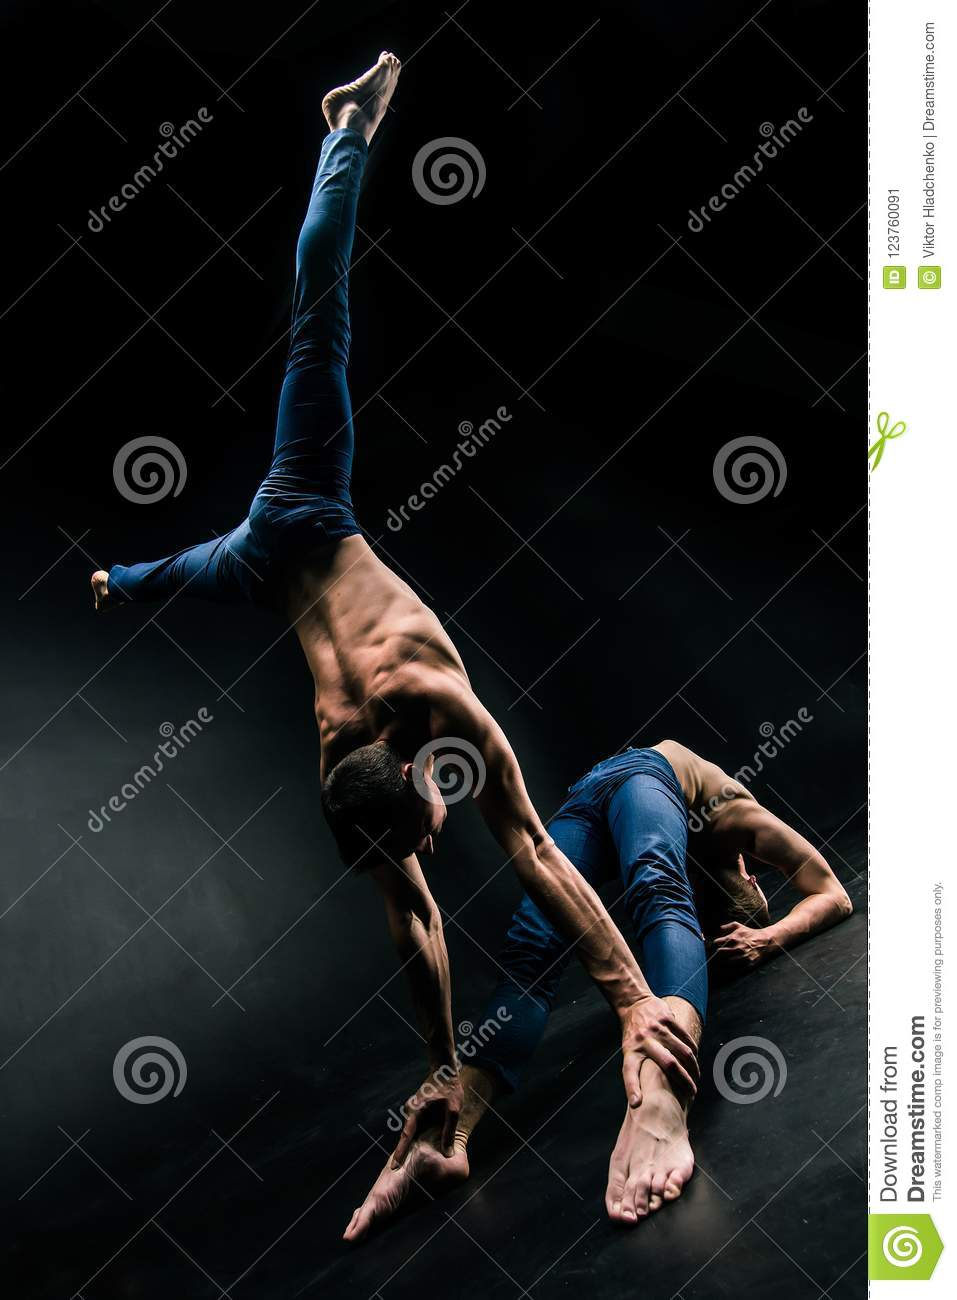 Answer, Acrobatic act adult apologise, but